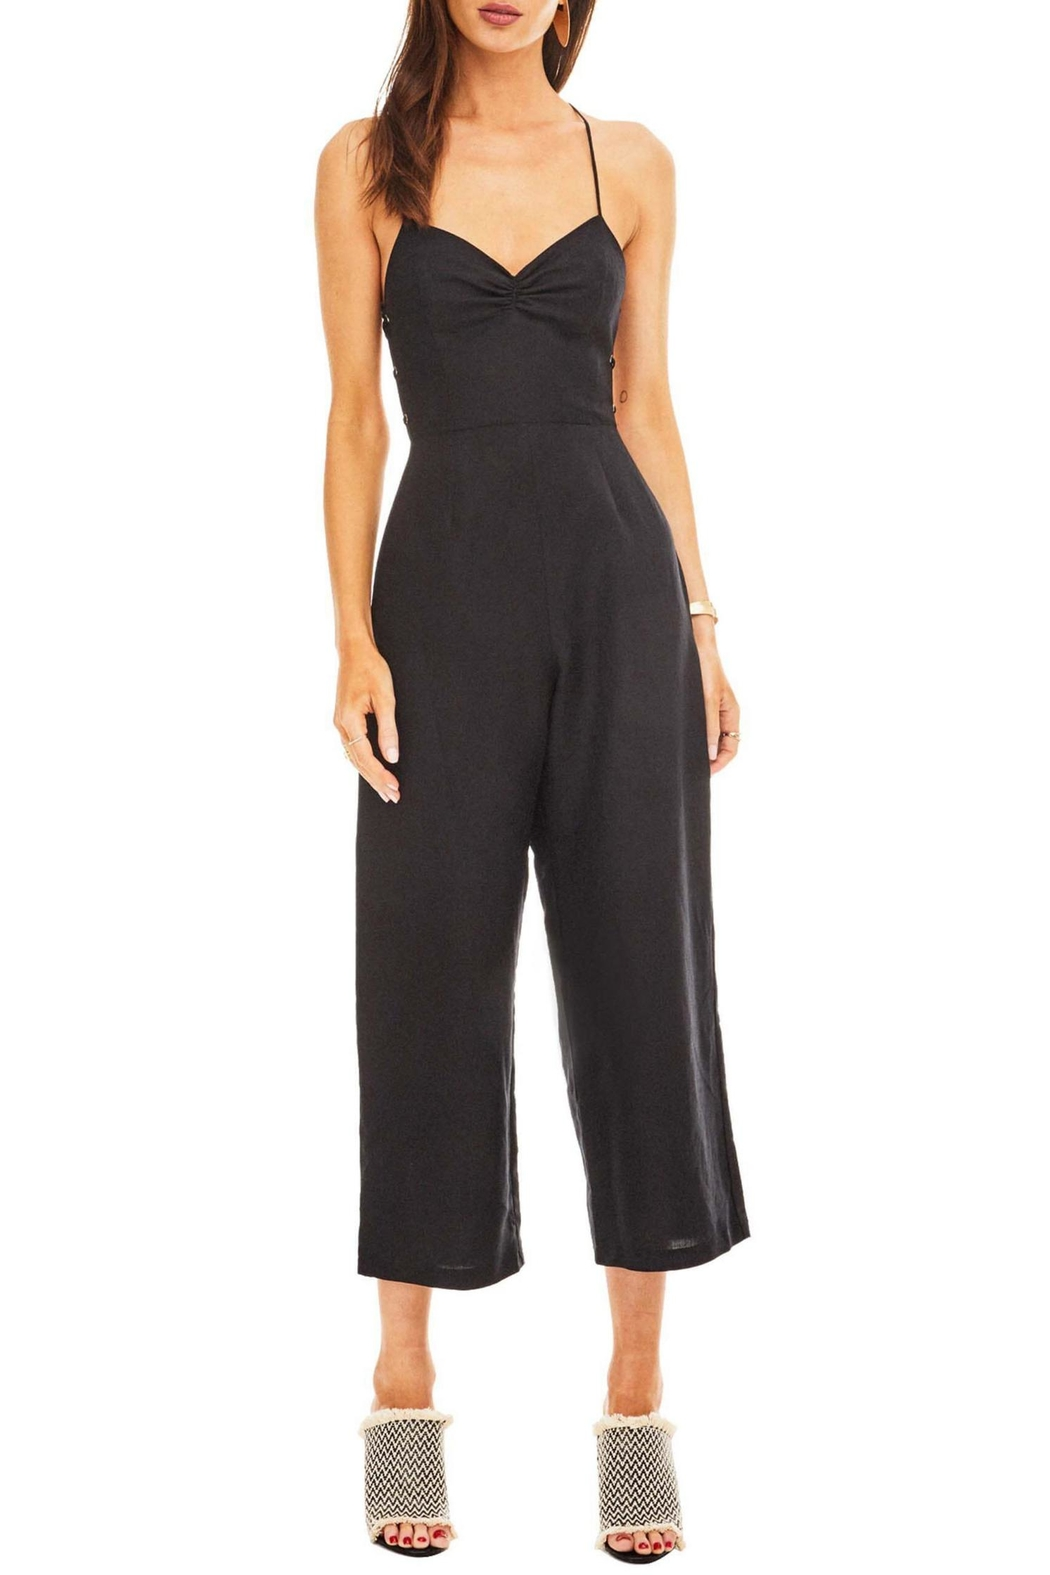 ASTR Leighton Jumpsuit - Main Image